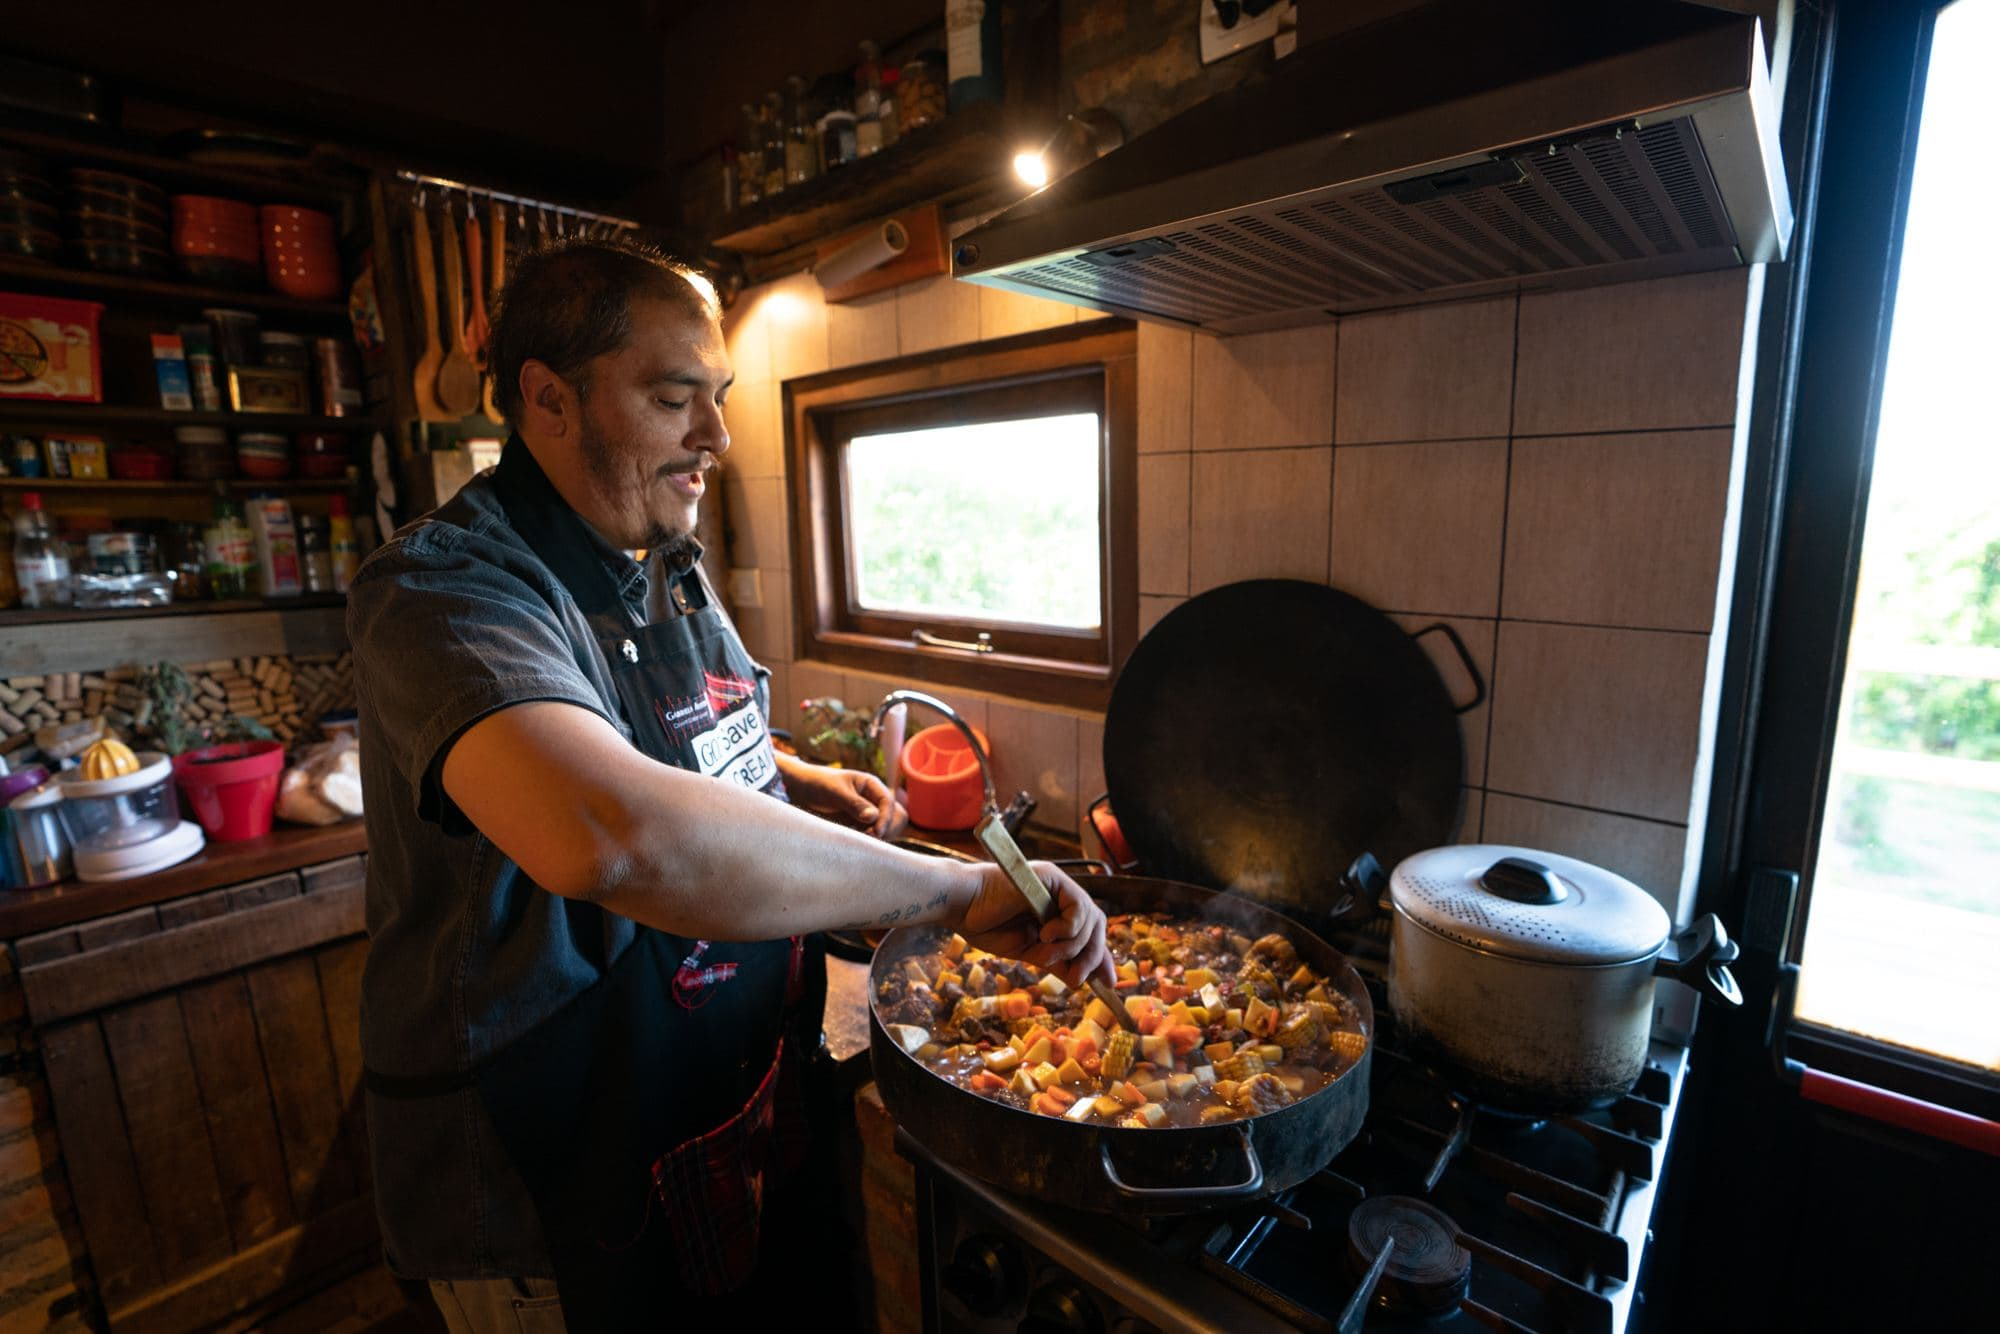 Chef Gabo Carrizo in El Calafate Argentina offers private dinners in his home